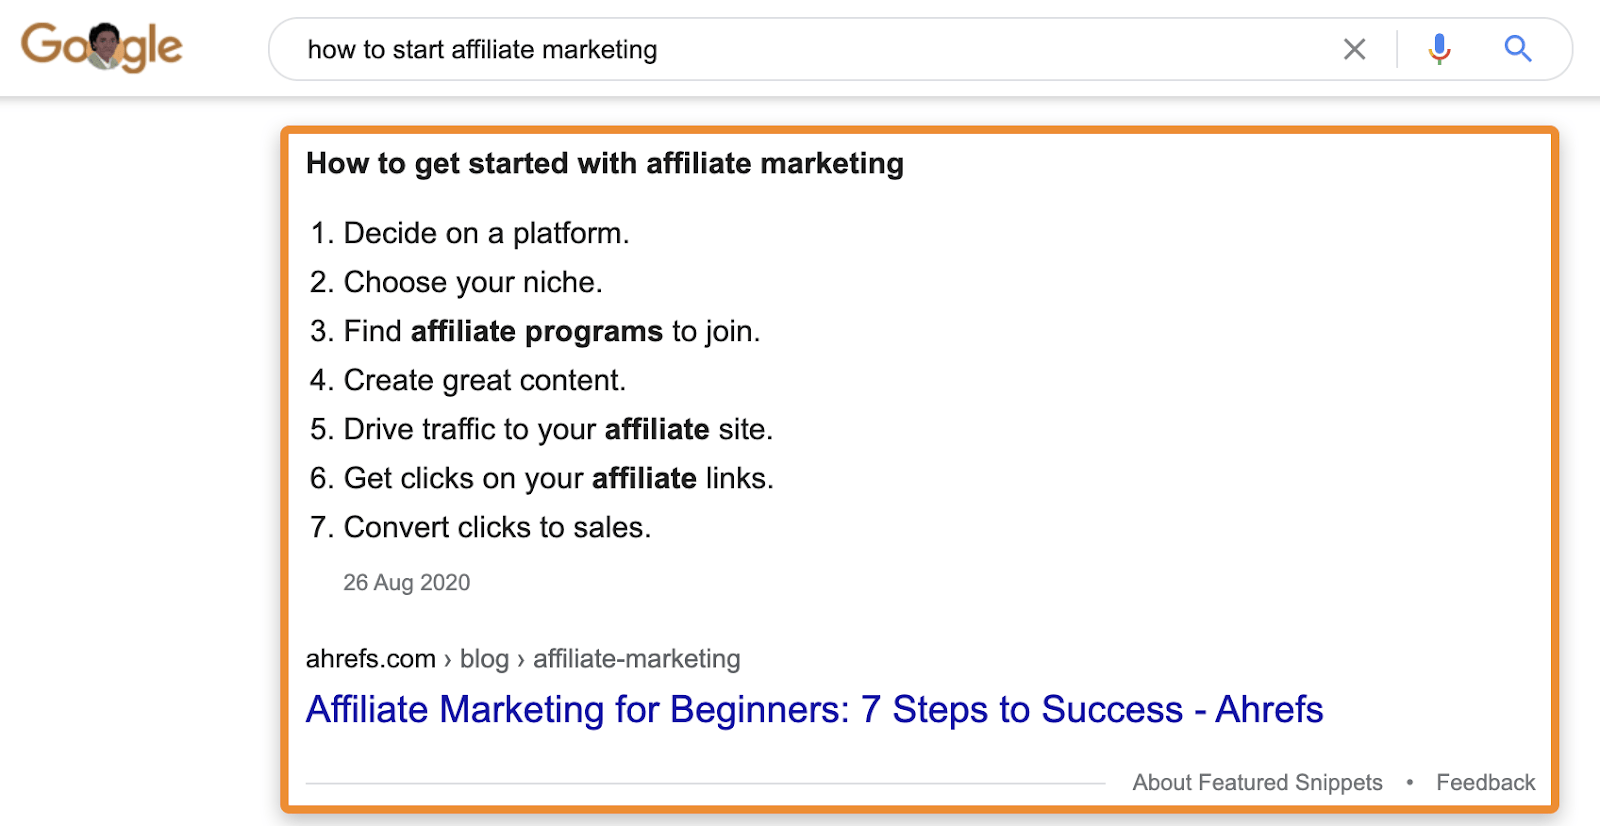 """7 Answer on page """"srcset ="""" https://ahrefs.com/blog/wp-content/uploads/2020/10/7-answer-on-page.png 1600w, https://ahrefs.com/blog/wp -content / uploads / 2020/10/7-answer-on-page-680x351.png 680w, https://ahrefs.com/blog/wp-content/uploads/2020/10/7-answer-on-page- 768x396.png 768w, https://ahrefs.com/blog/wp-content/uploads/2020/10/7-answer-on-page-1536x793.png 1536w """"data-size ="""" (maximum width: 1600px) 100vw , 1600px"""